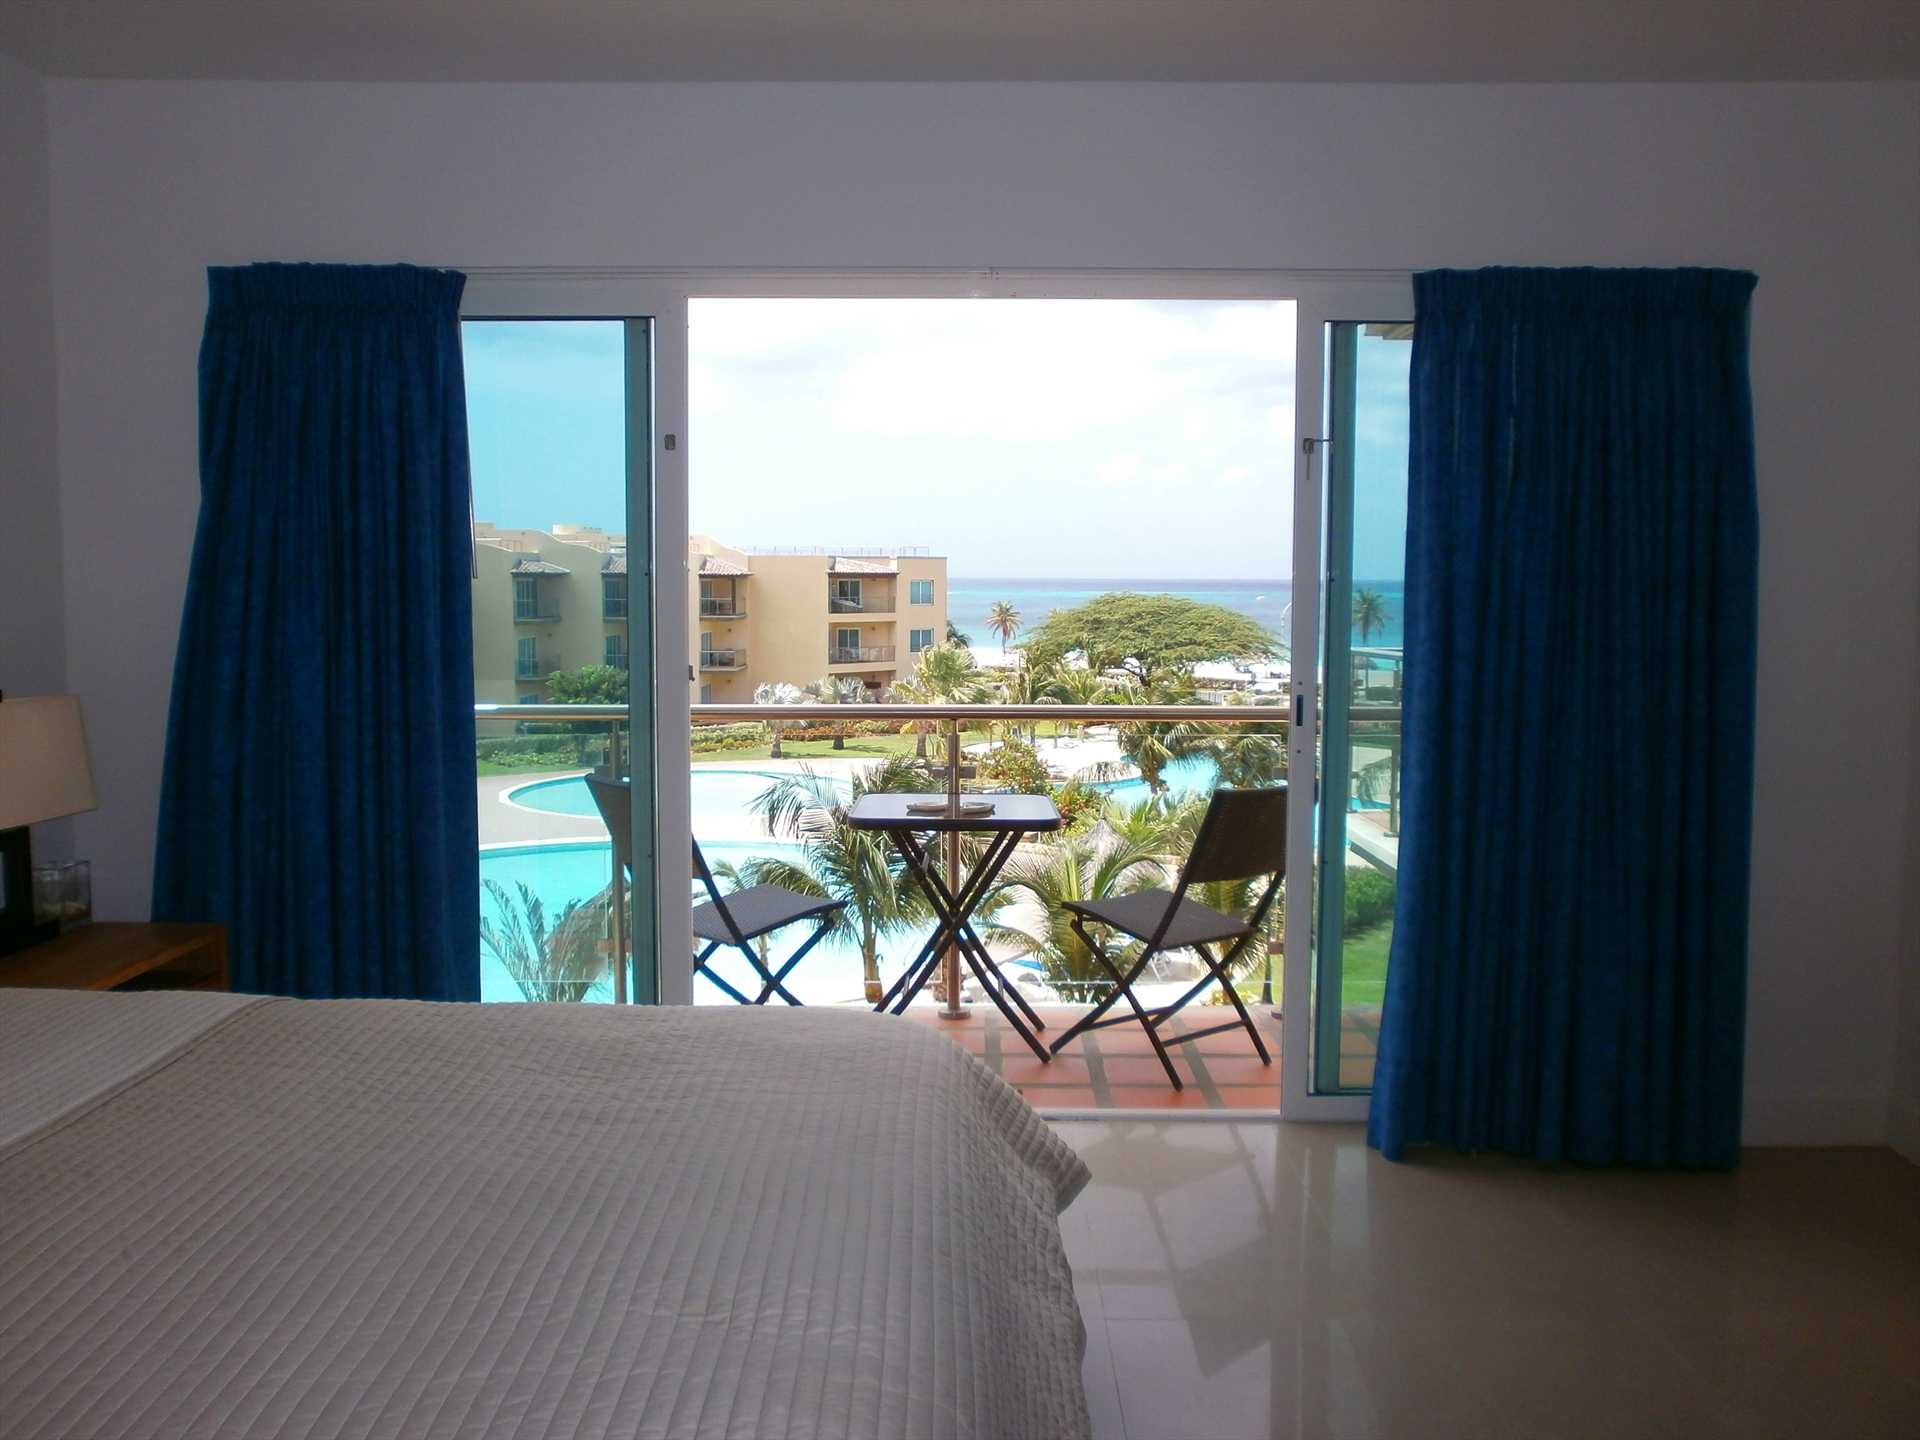 Master bedroom with also a balcony and ocean view